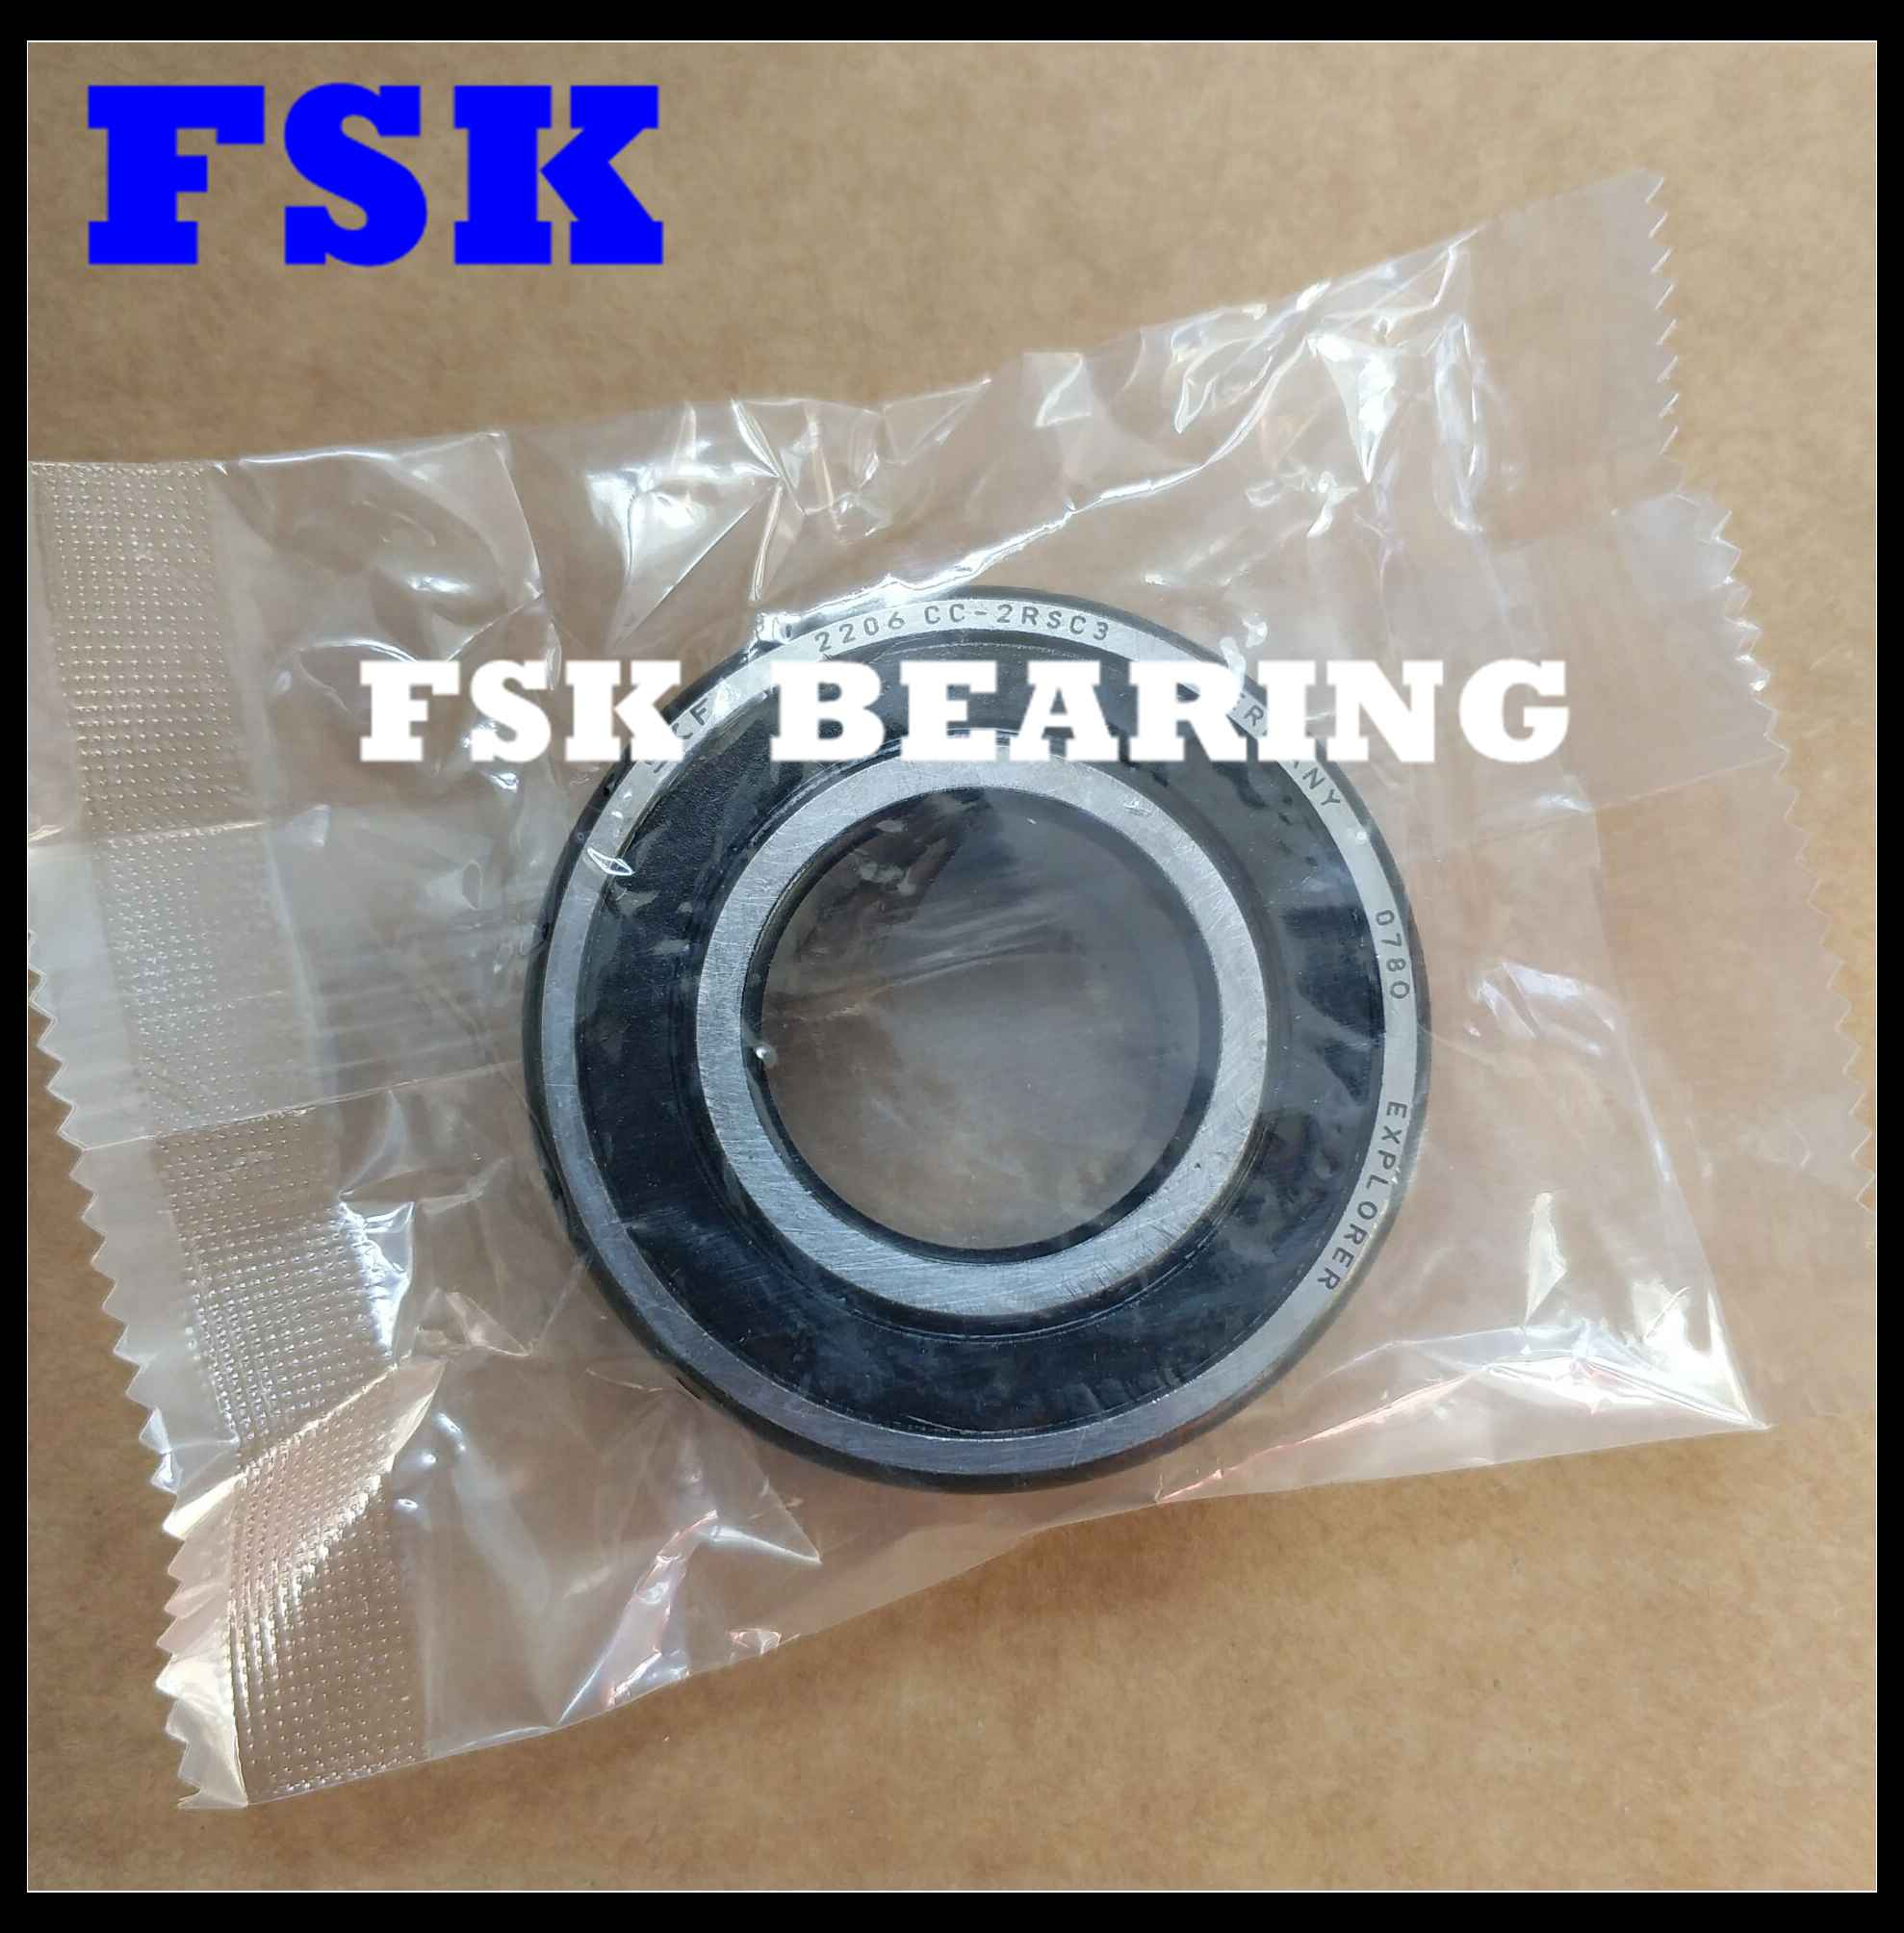 Set of 10 SELF ALIGNING DOUBLE ROW BALL BEARING 2209-2RS WITH 2 RUBBER SEALS